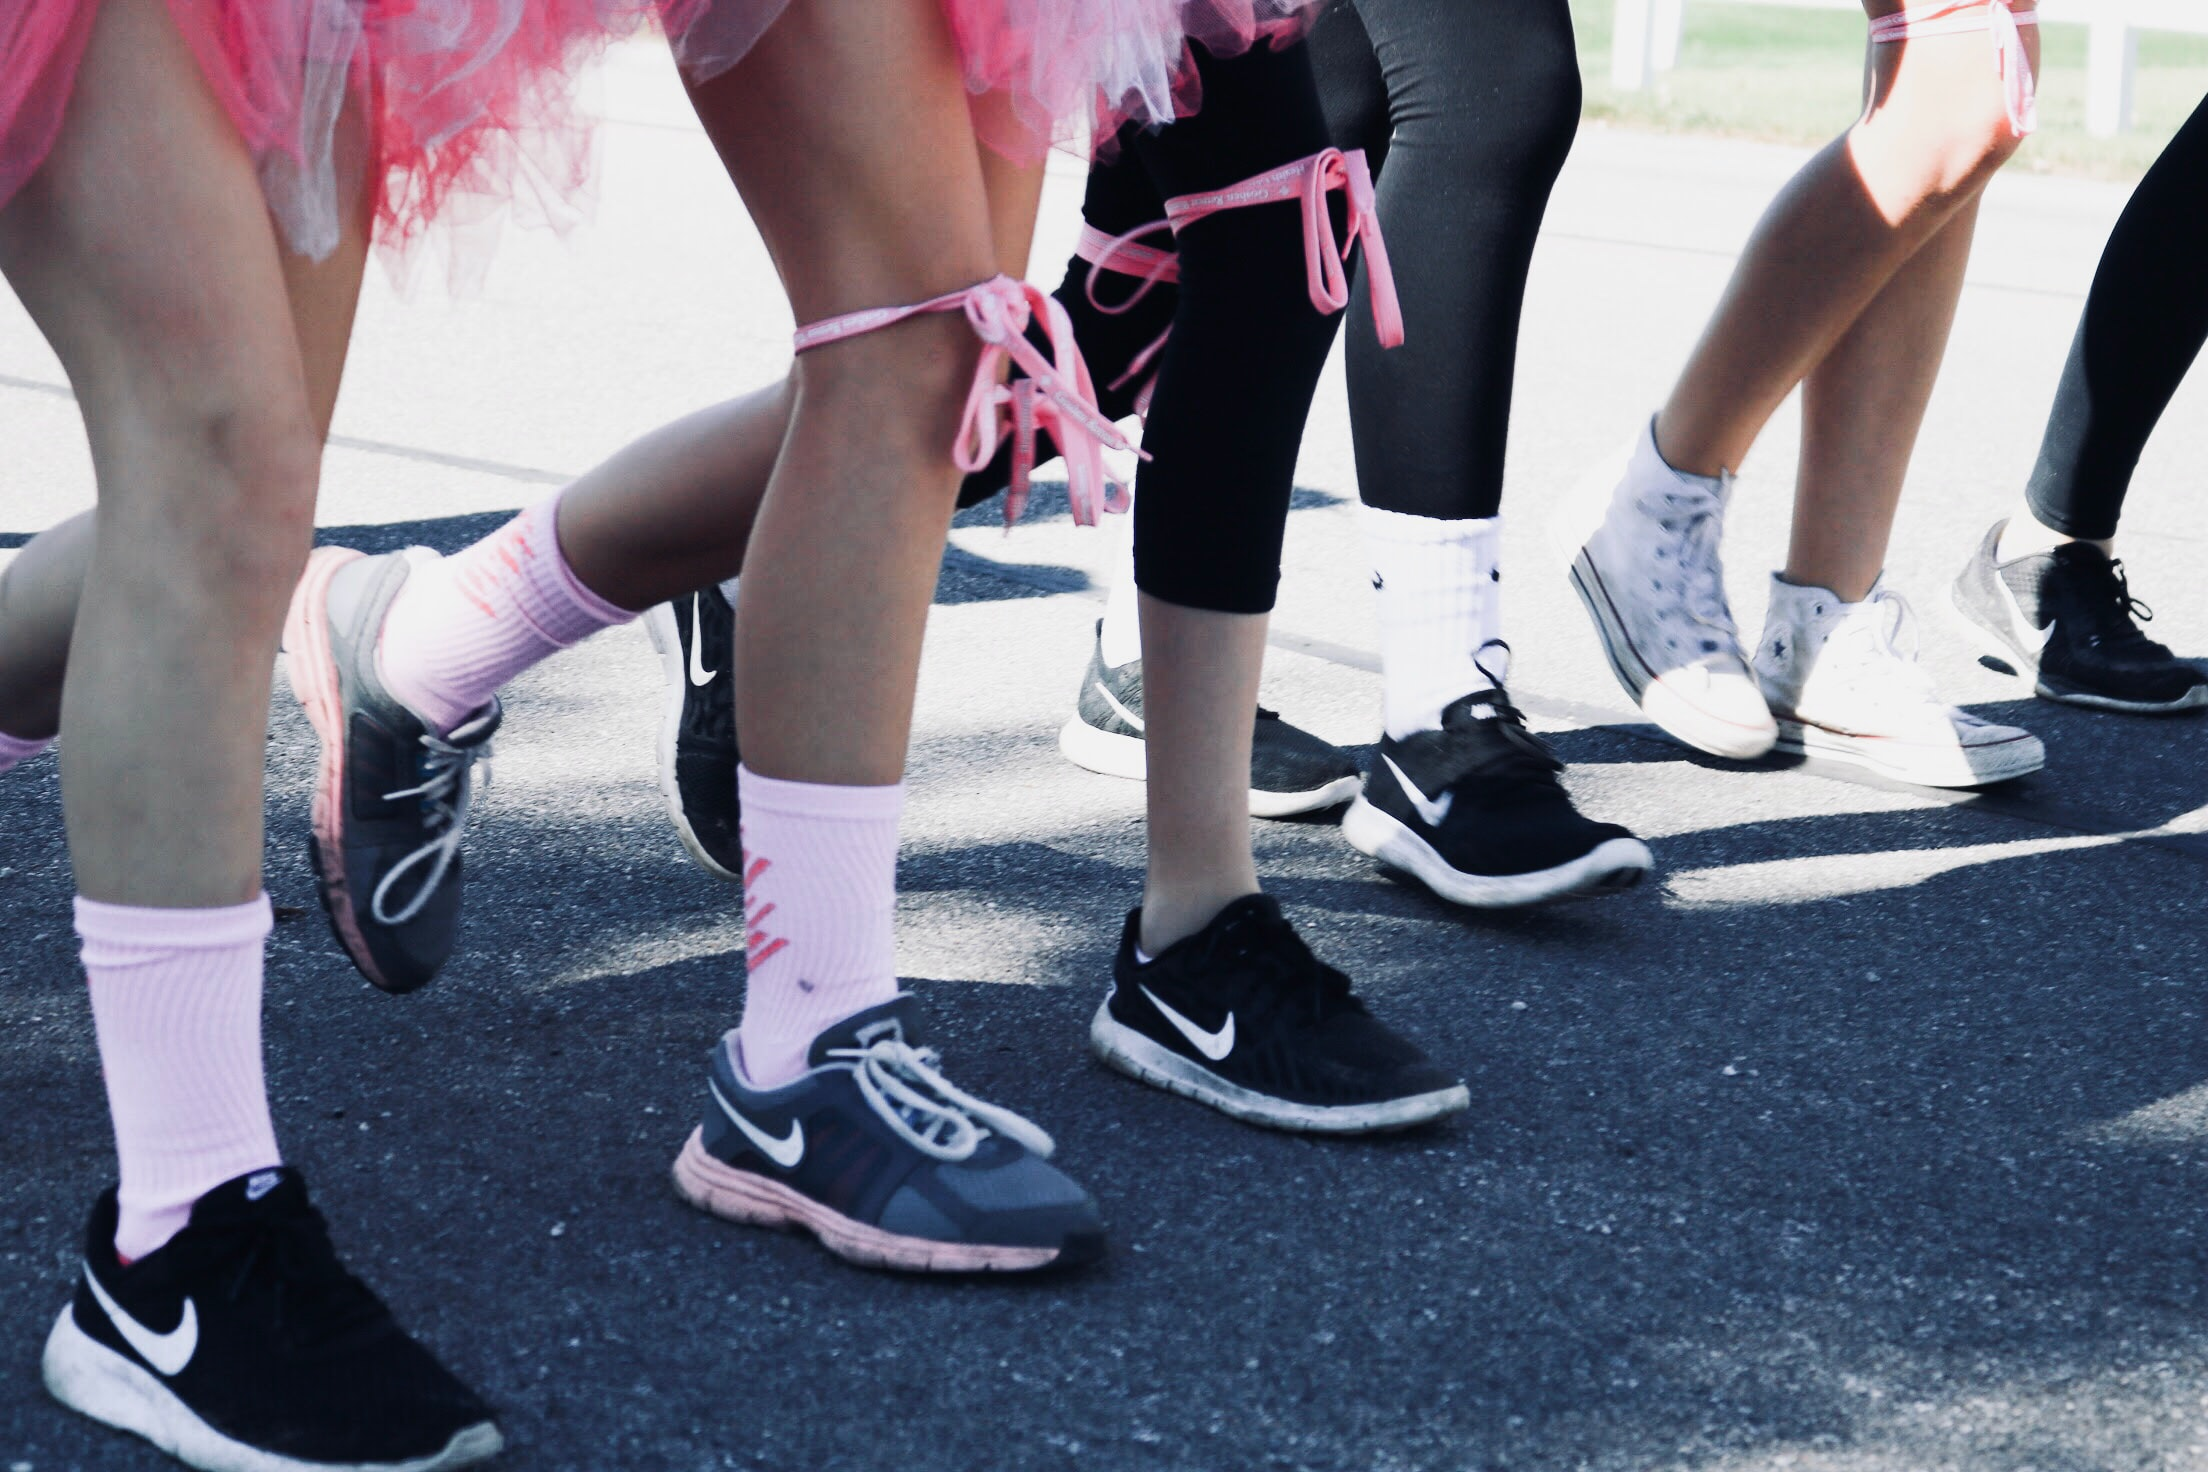 Marathon walkers and runners supporting breast cancer